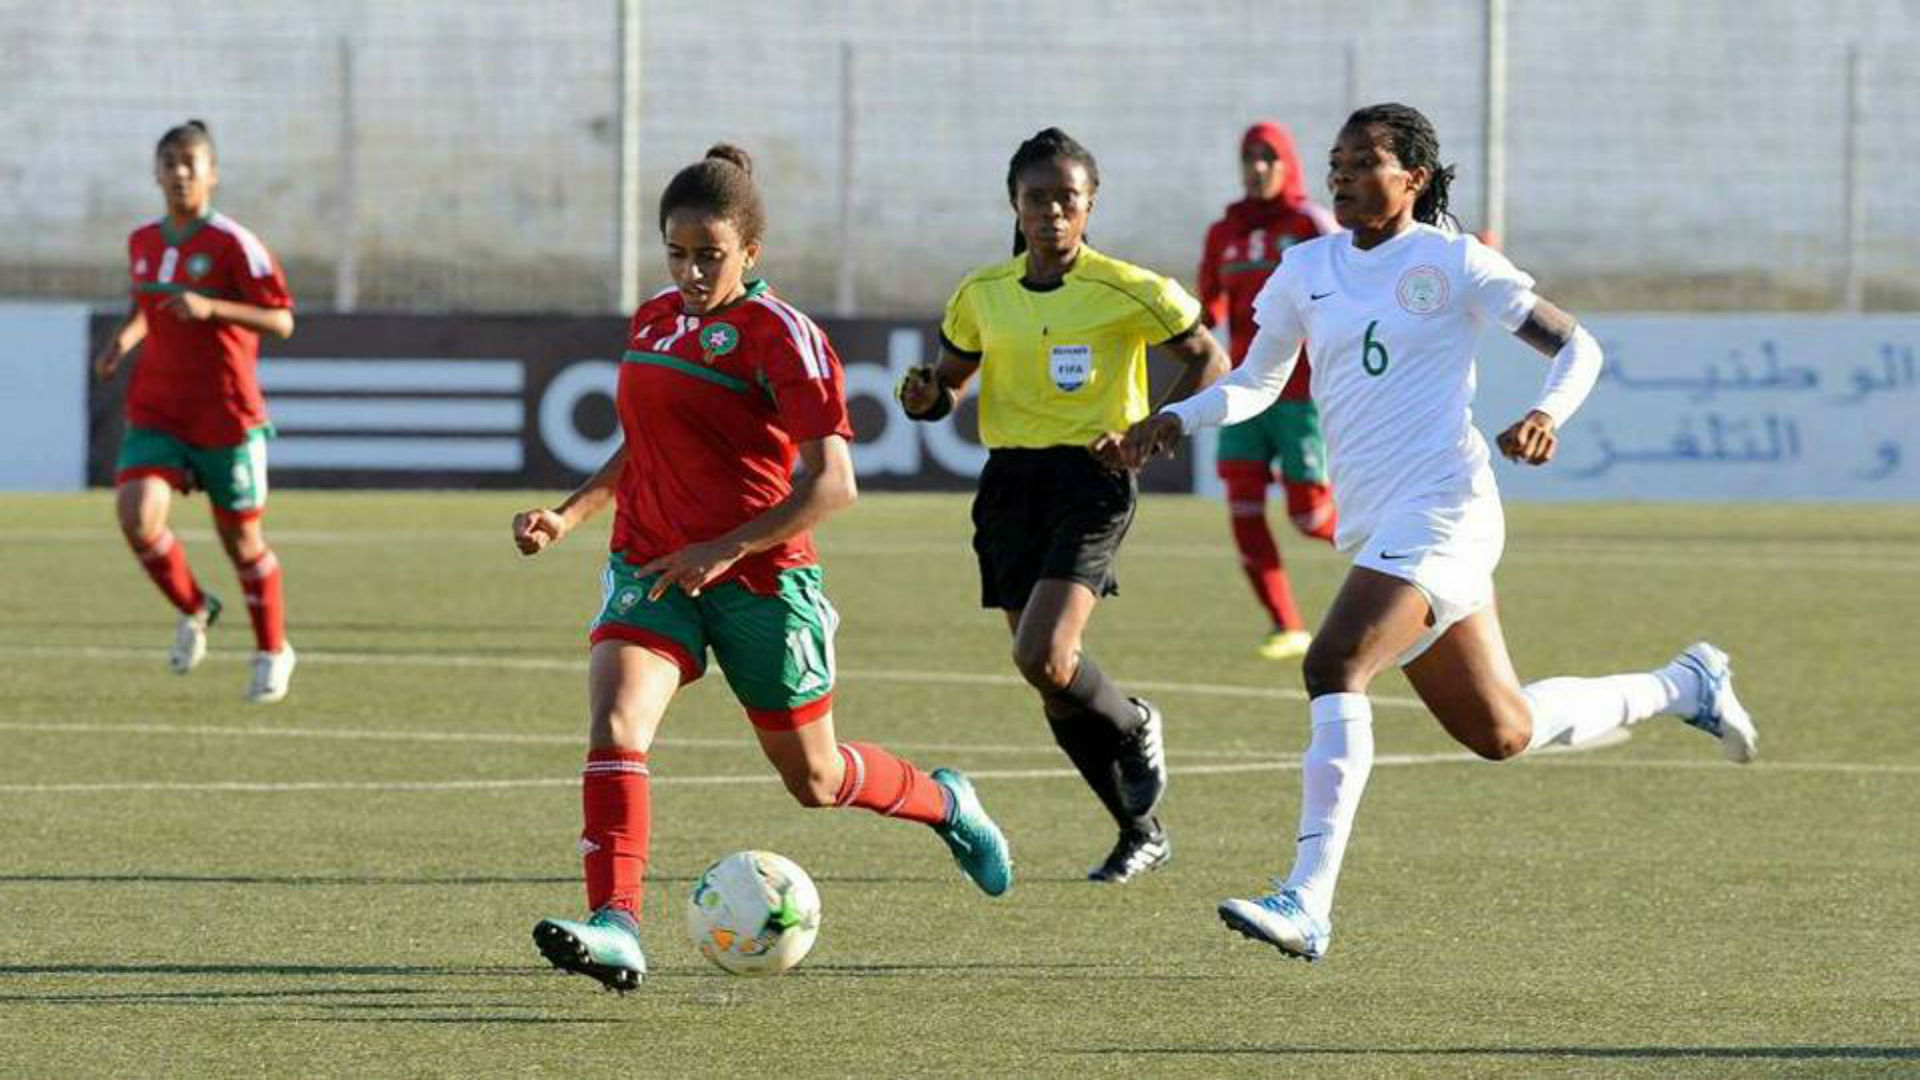 Morocco announces plans to launch women's professional football leagues - Sports Leo